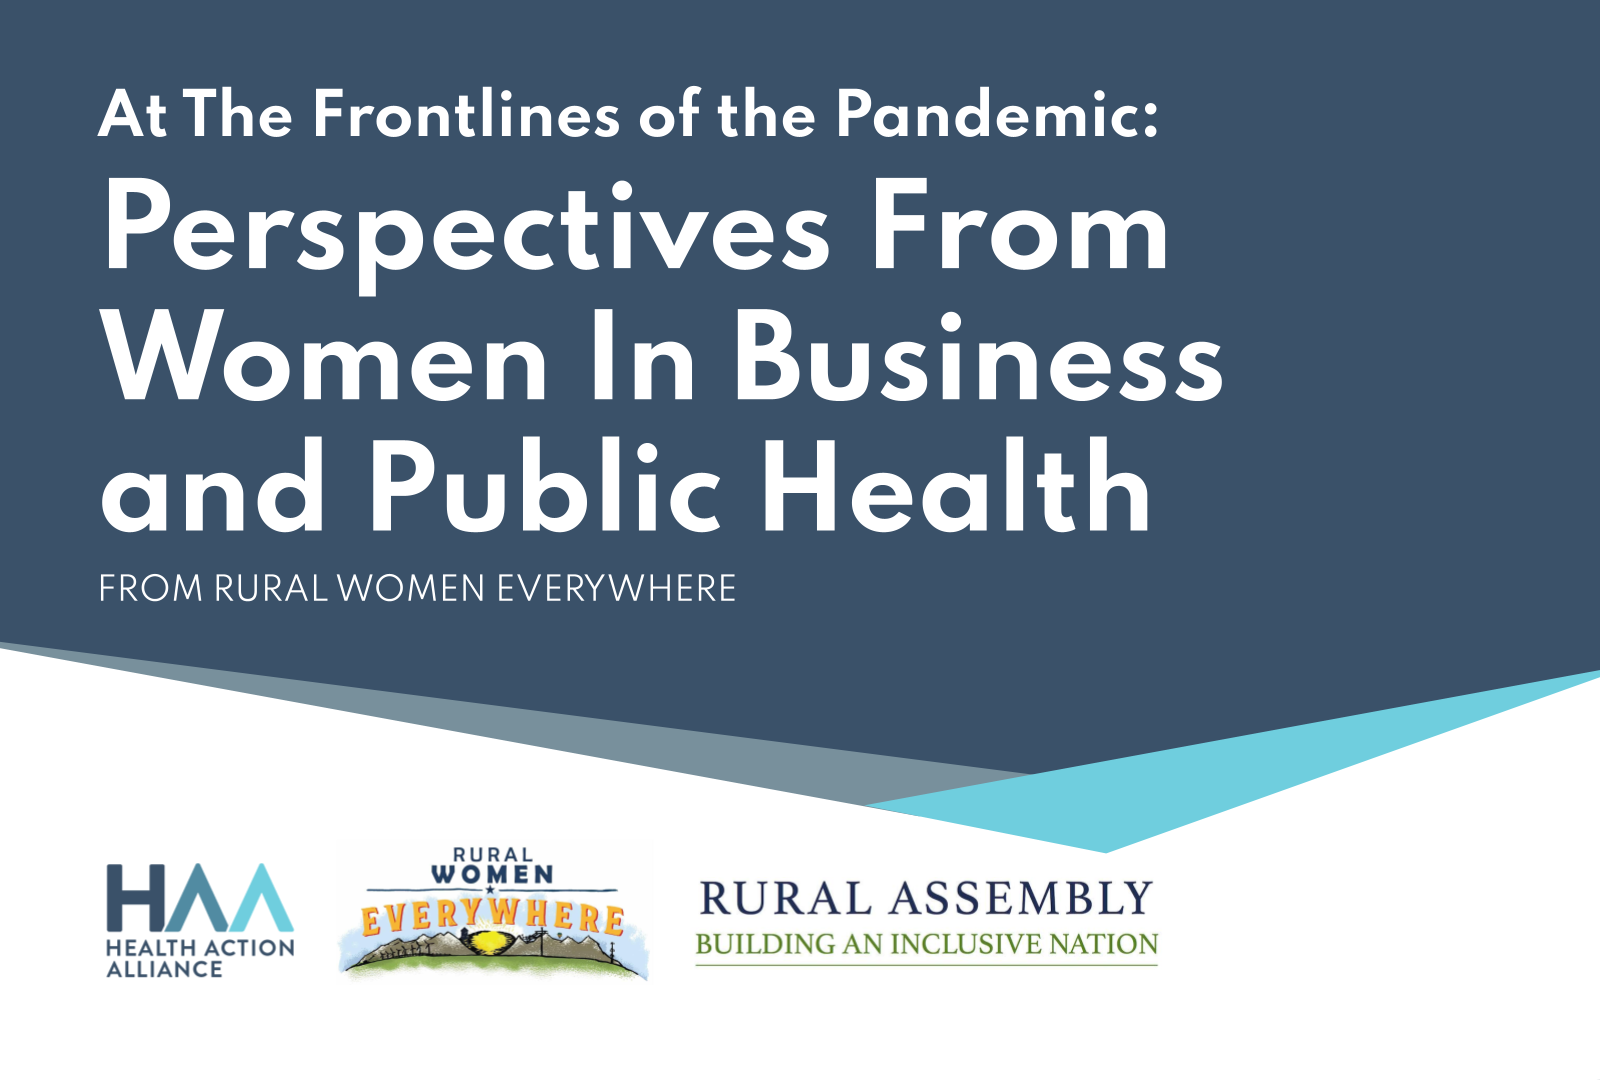 At The Frontlines of the Pandemic: Perspectives From Women In Business and Public Health